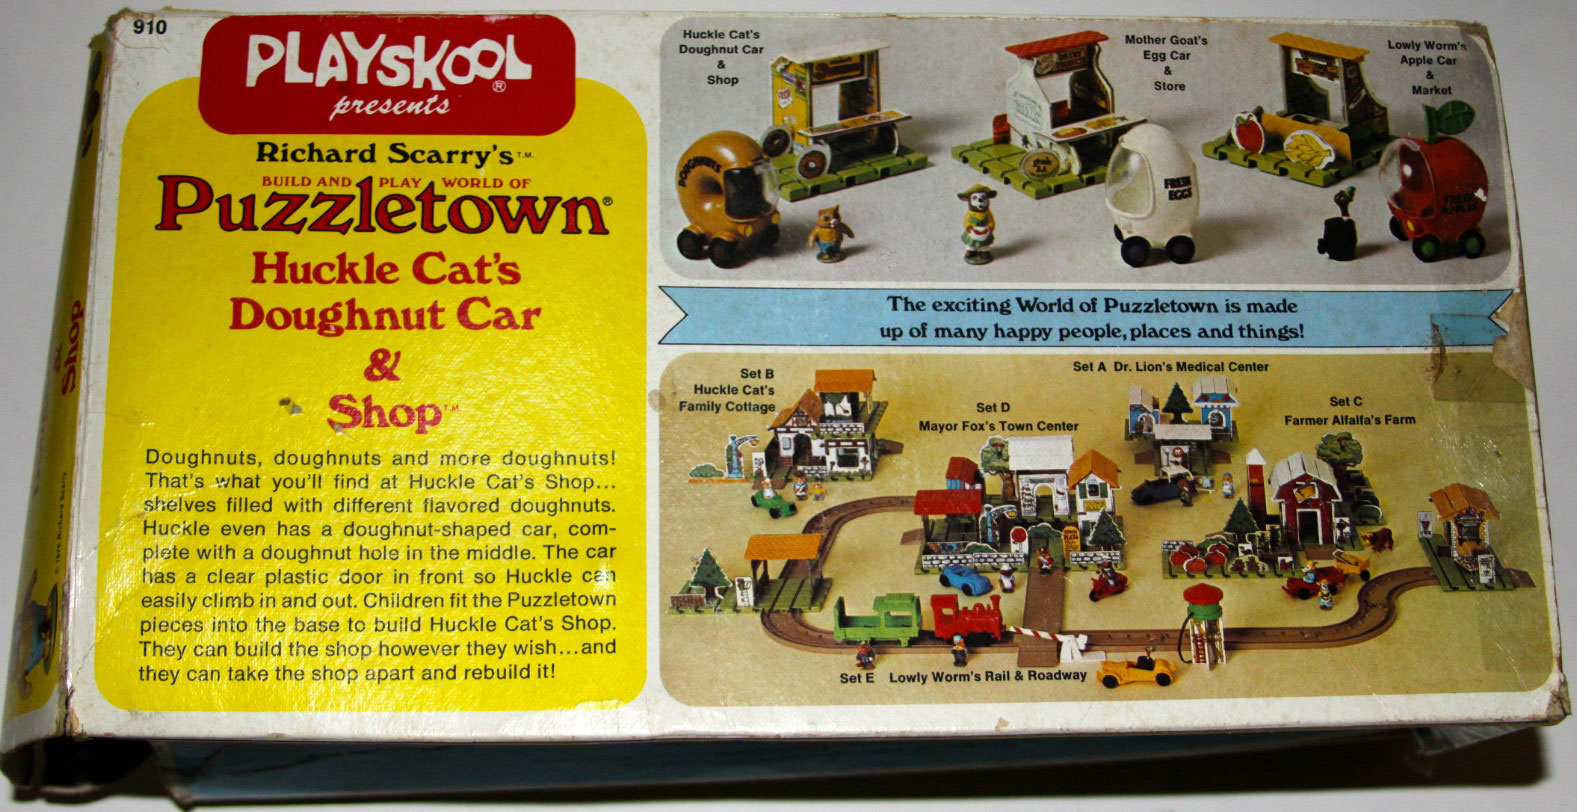 Playskool 910 Puzzletown Huckle Cat S Doughnut Car Amp Shop